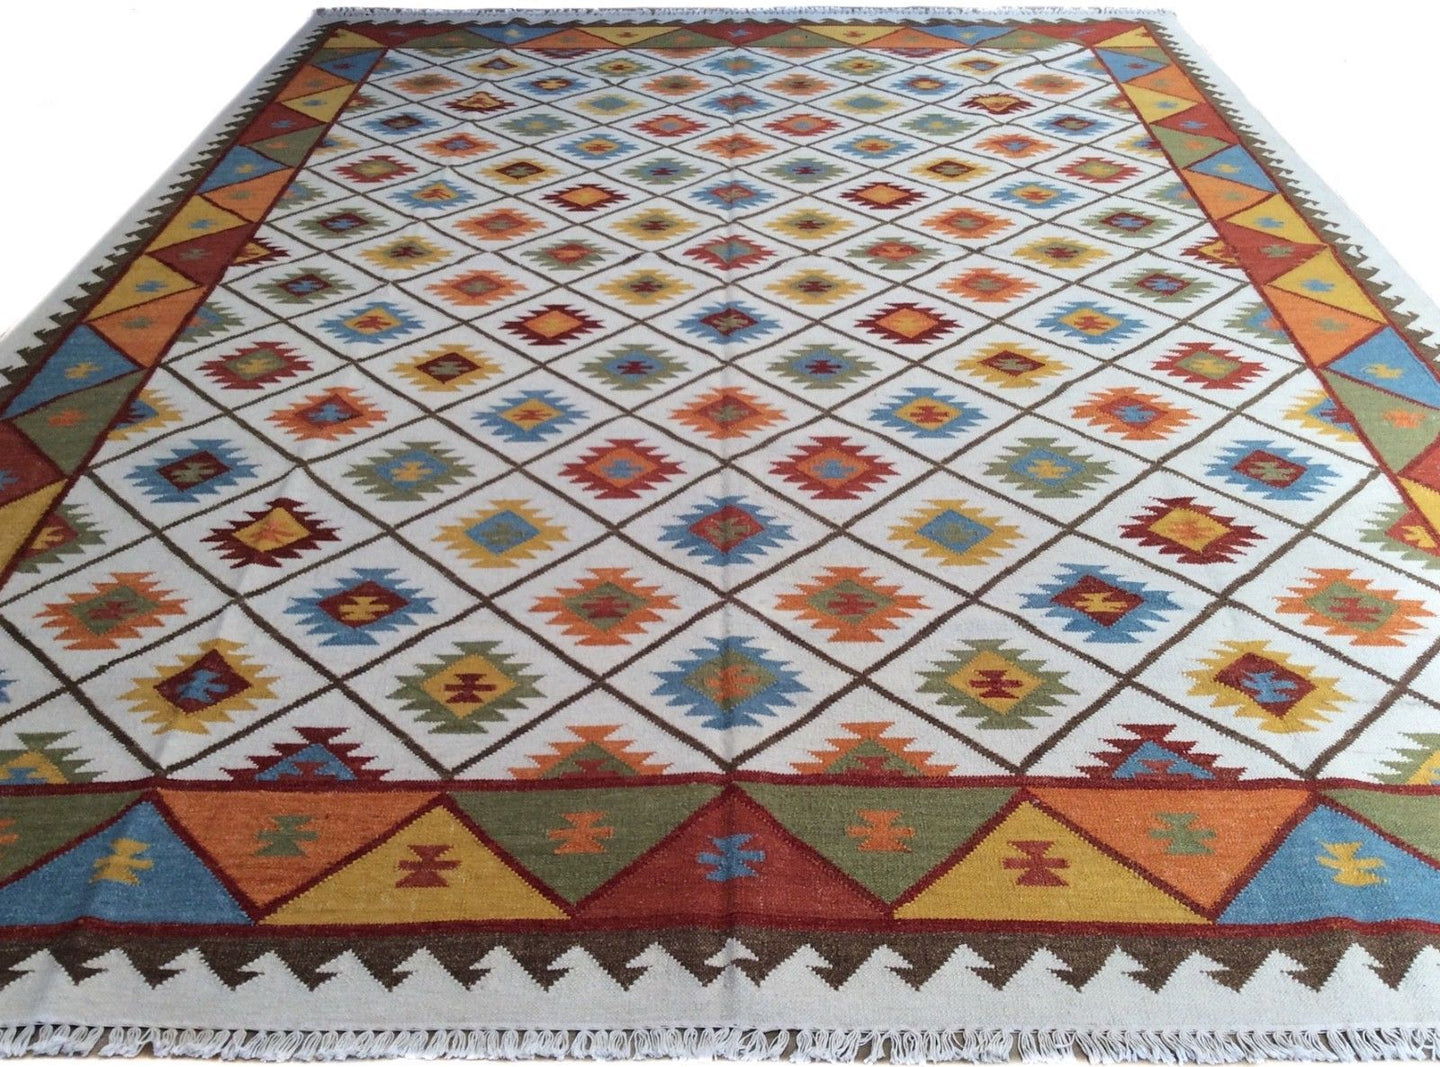 Fine Indian Durrie Kilim Artisan Handwoven Reversible Real Wool Amazing Unique Rug